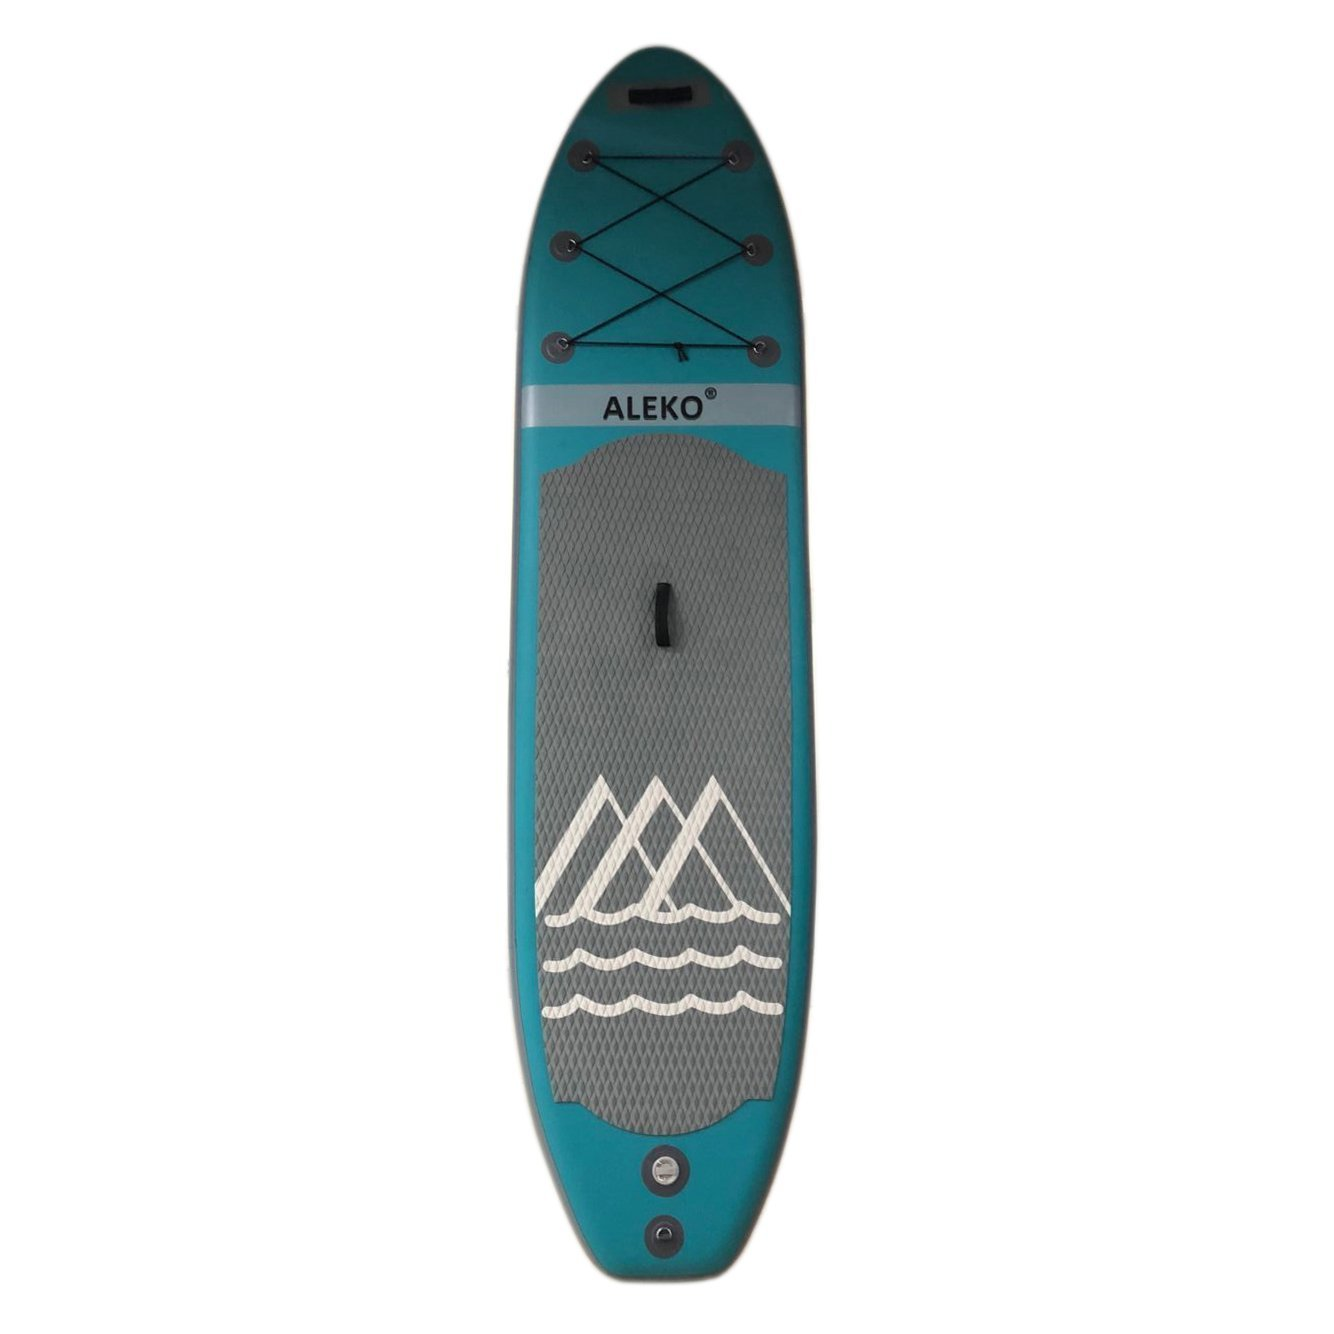 SUPB310 10 Foot Stand Up Inflatable Paddle Board With Mountain Design Light Blue